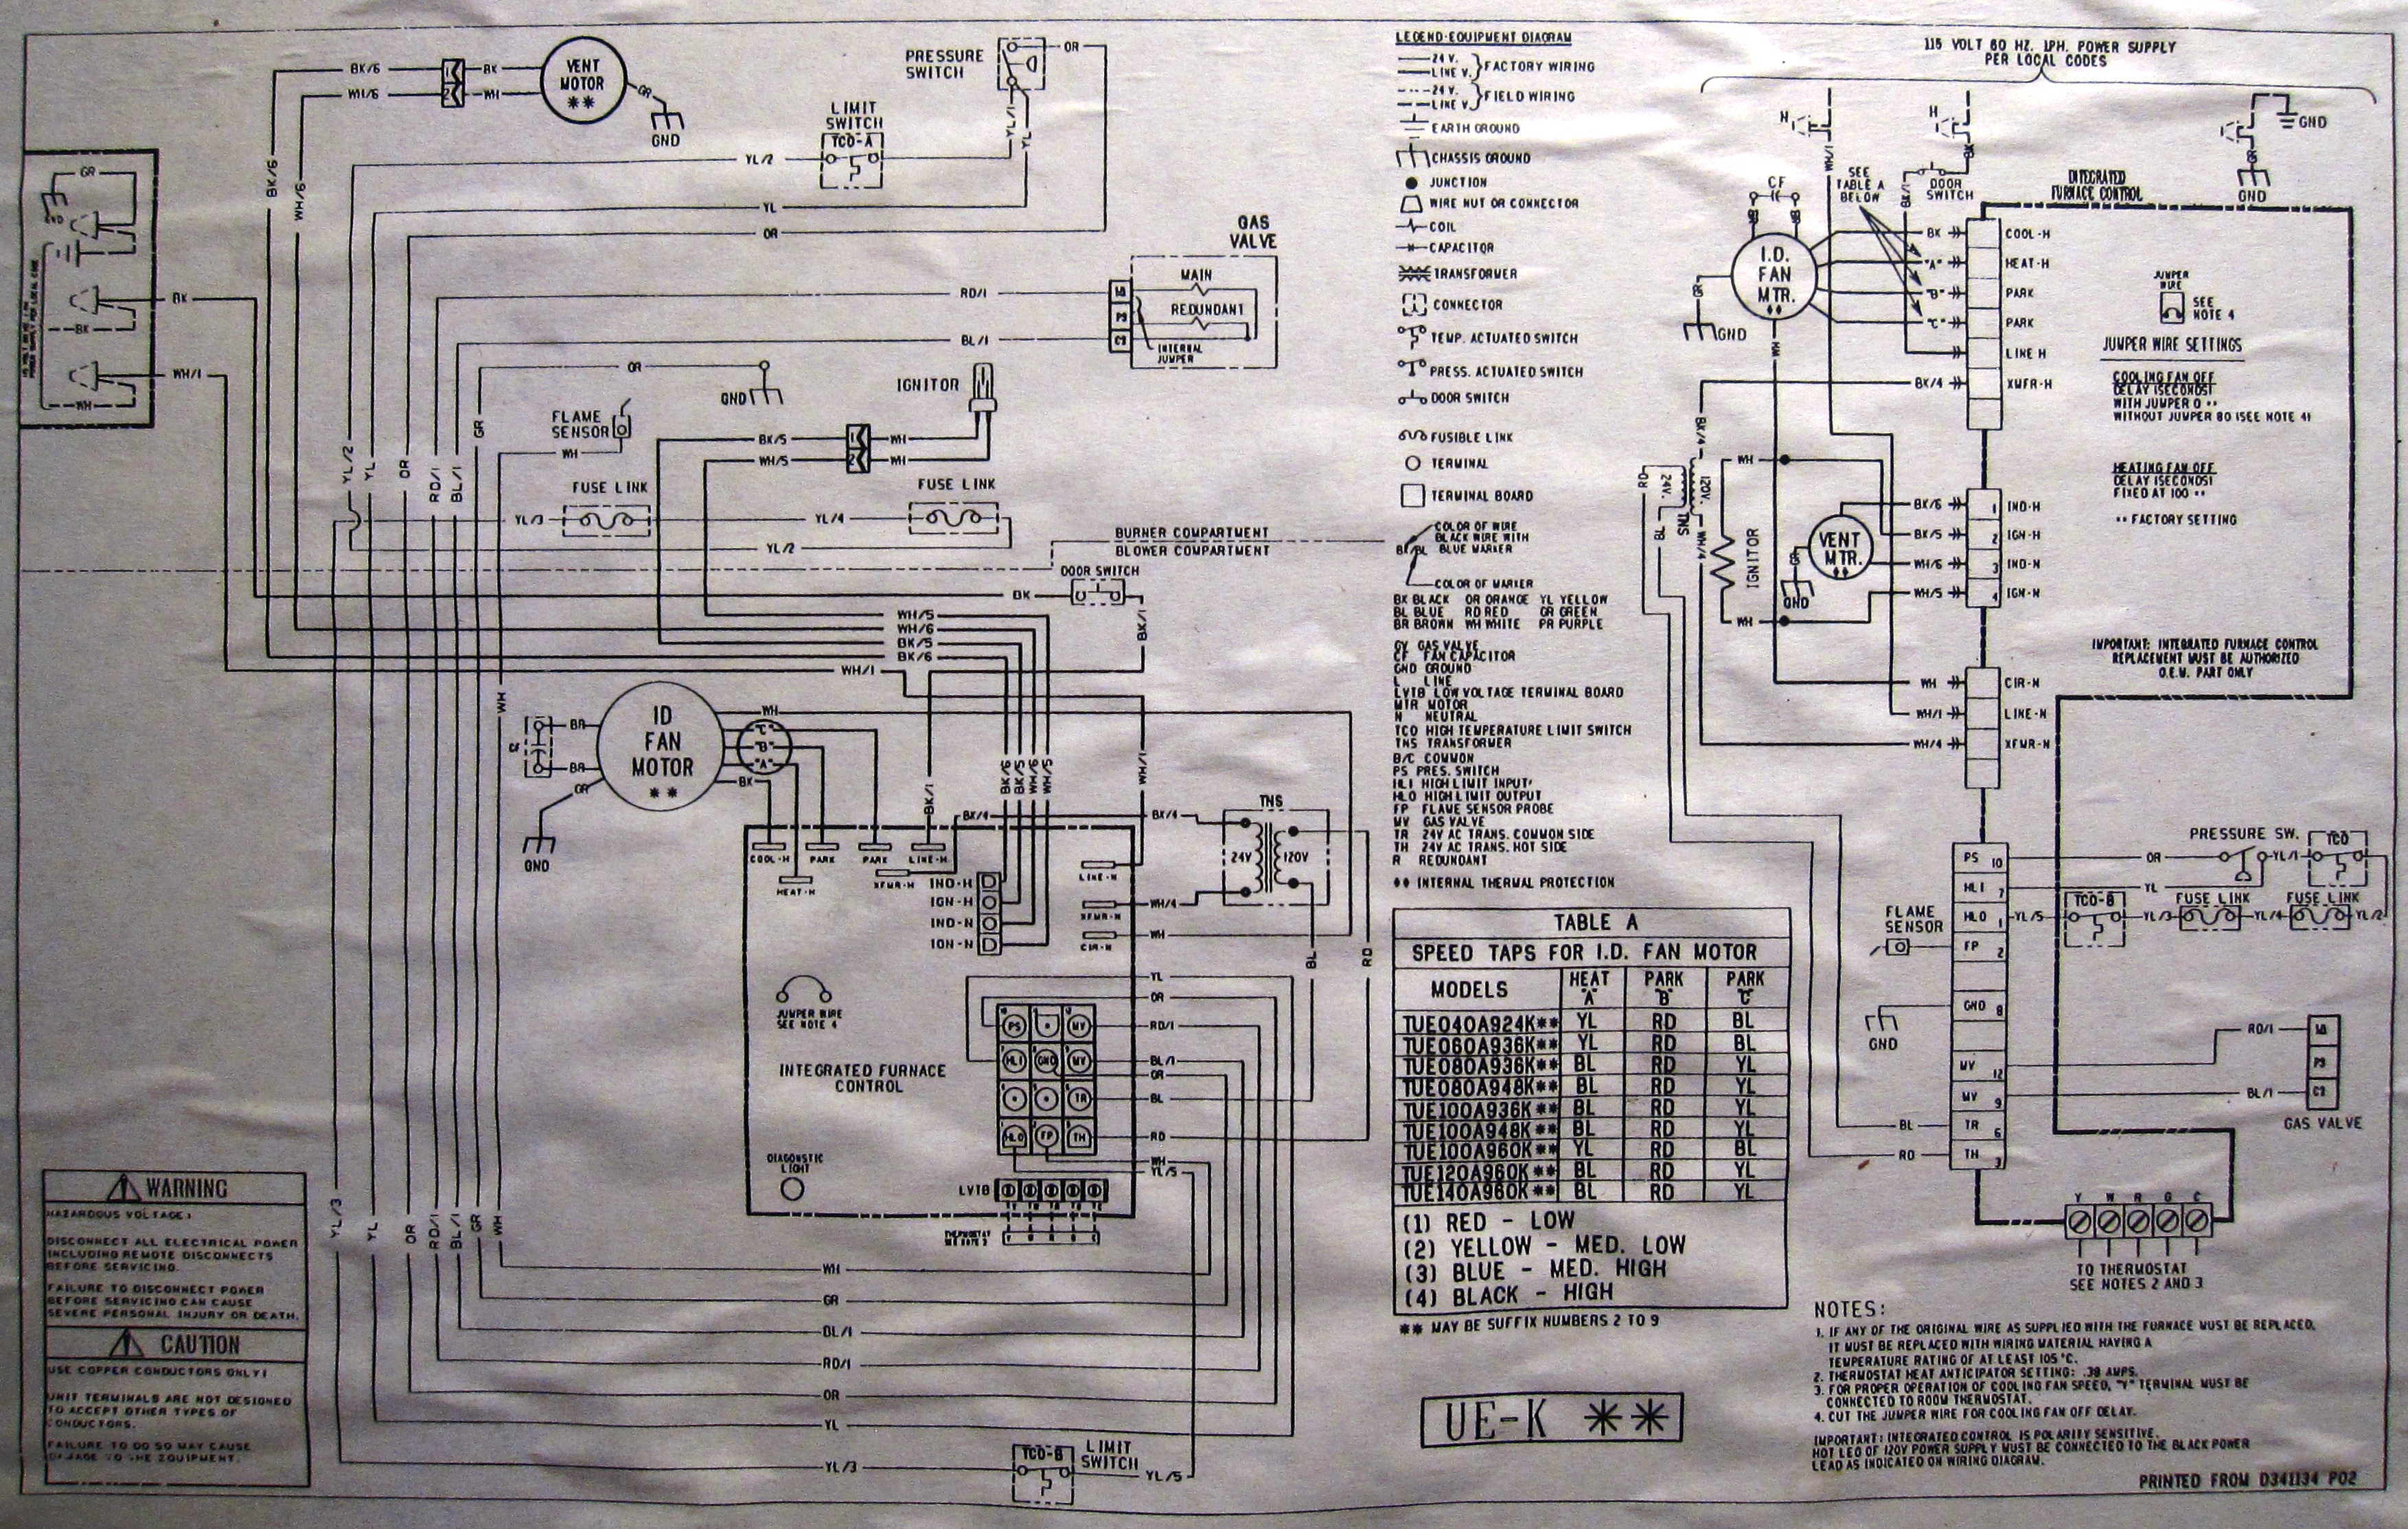 temperature control fan circuit diagram i have a two-zone ac/furnace system controlled by two ...